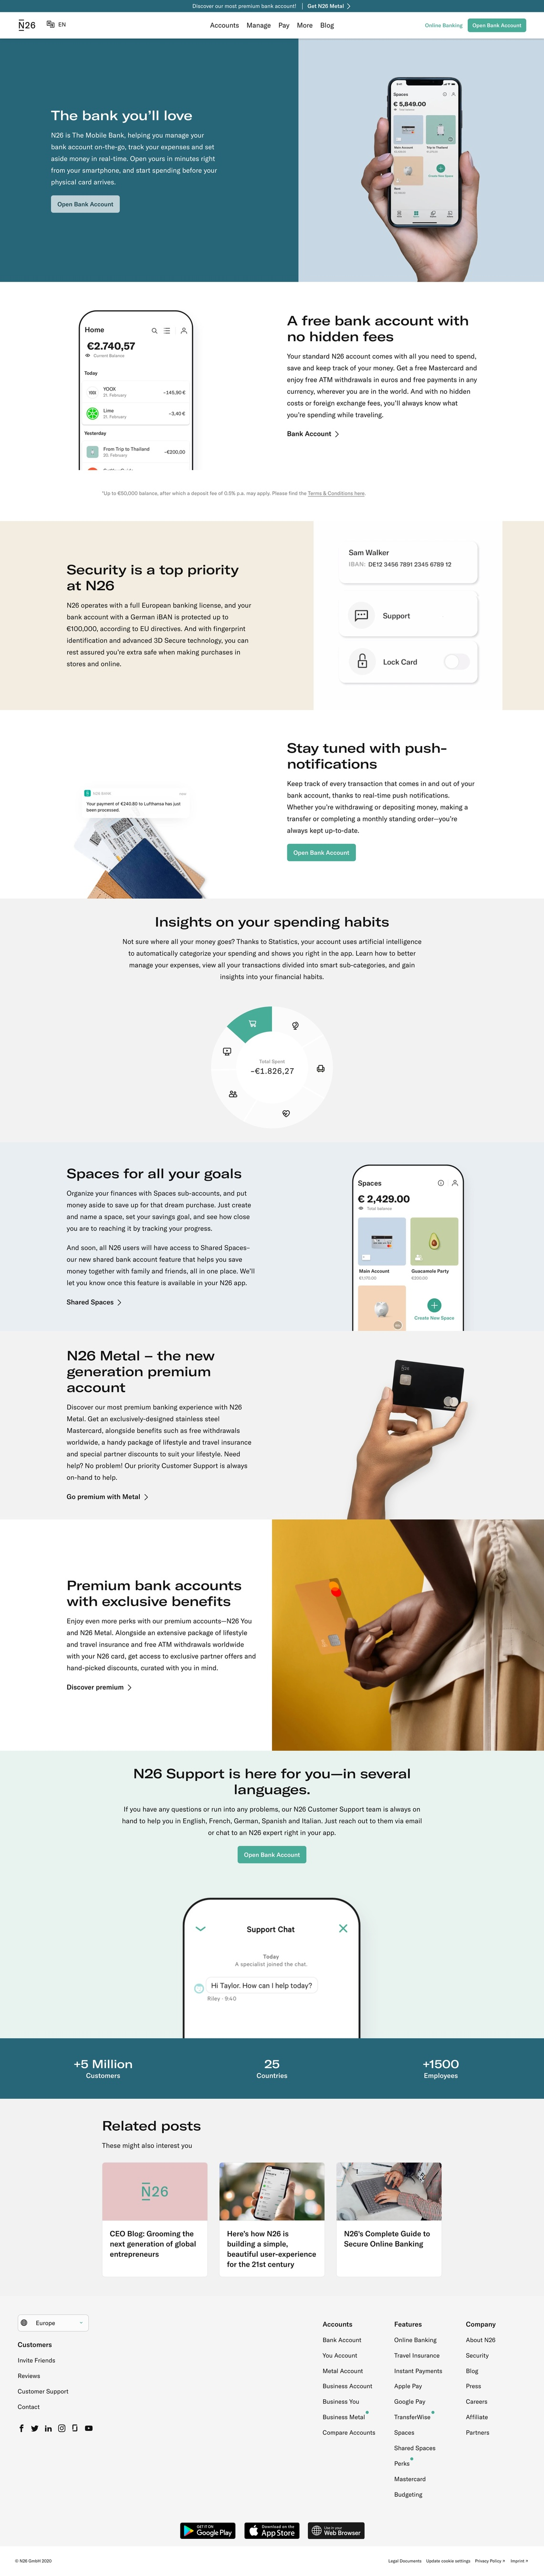 N26 The Mobile Bank — N26 Europe